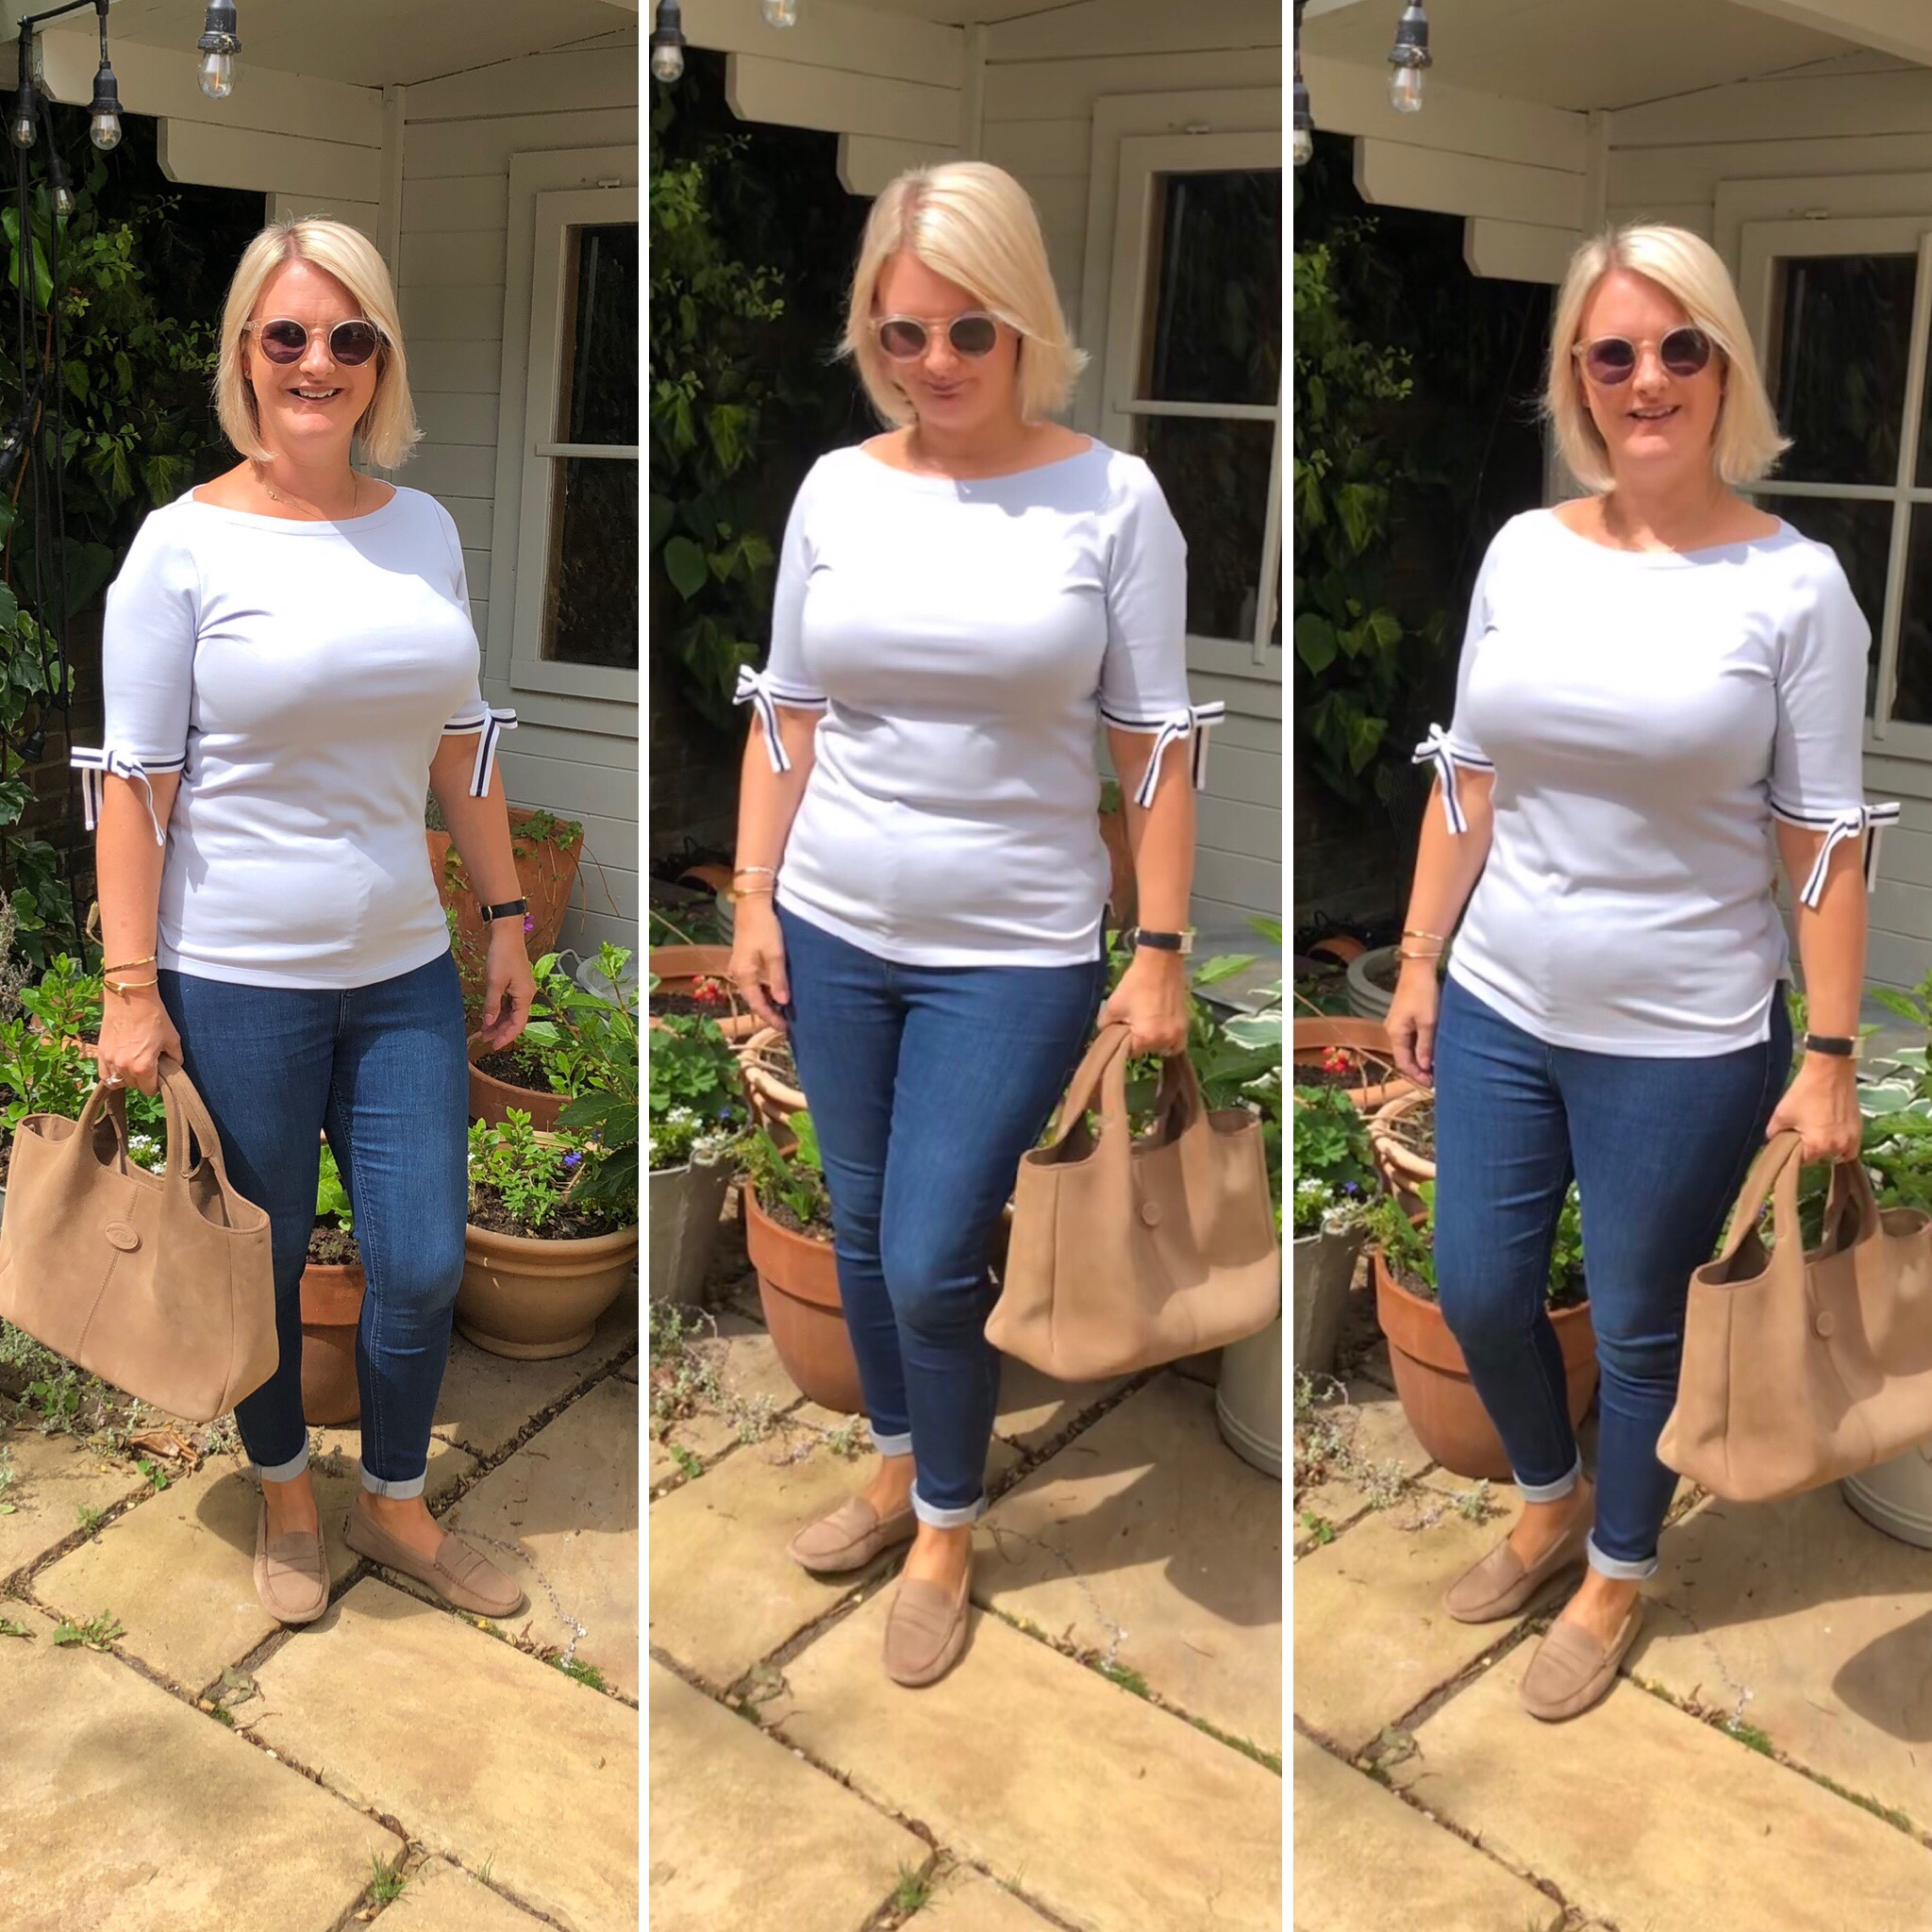 Top from Ralph Lauren, Jeans - Joni's from Topshop, Shoes and Bag from Todd's.